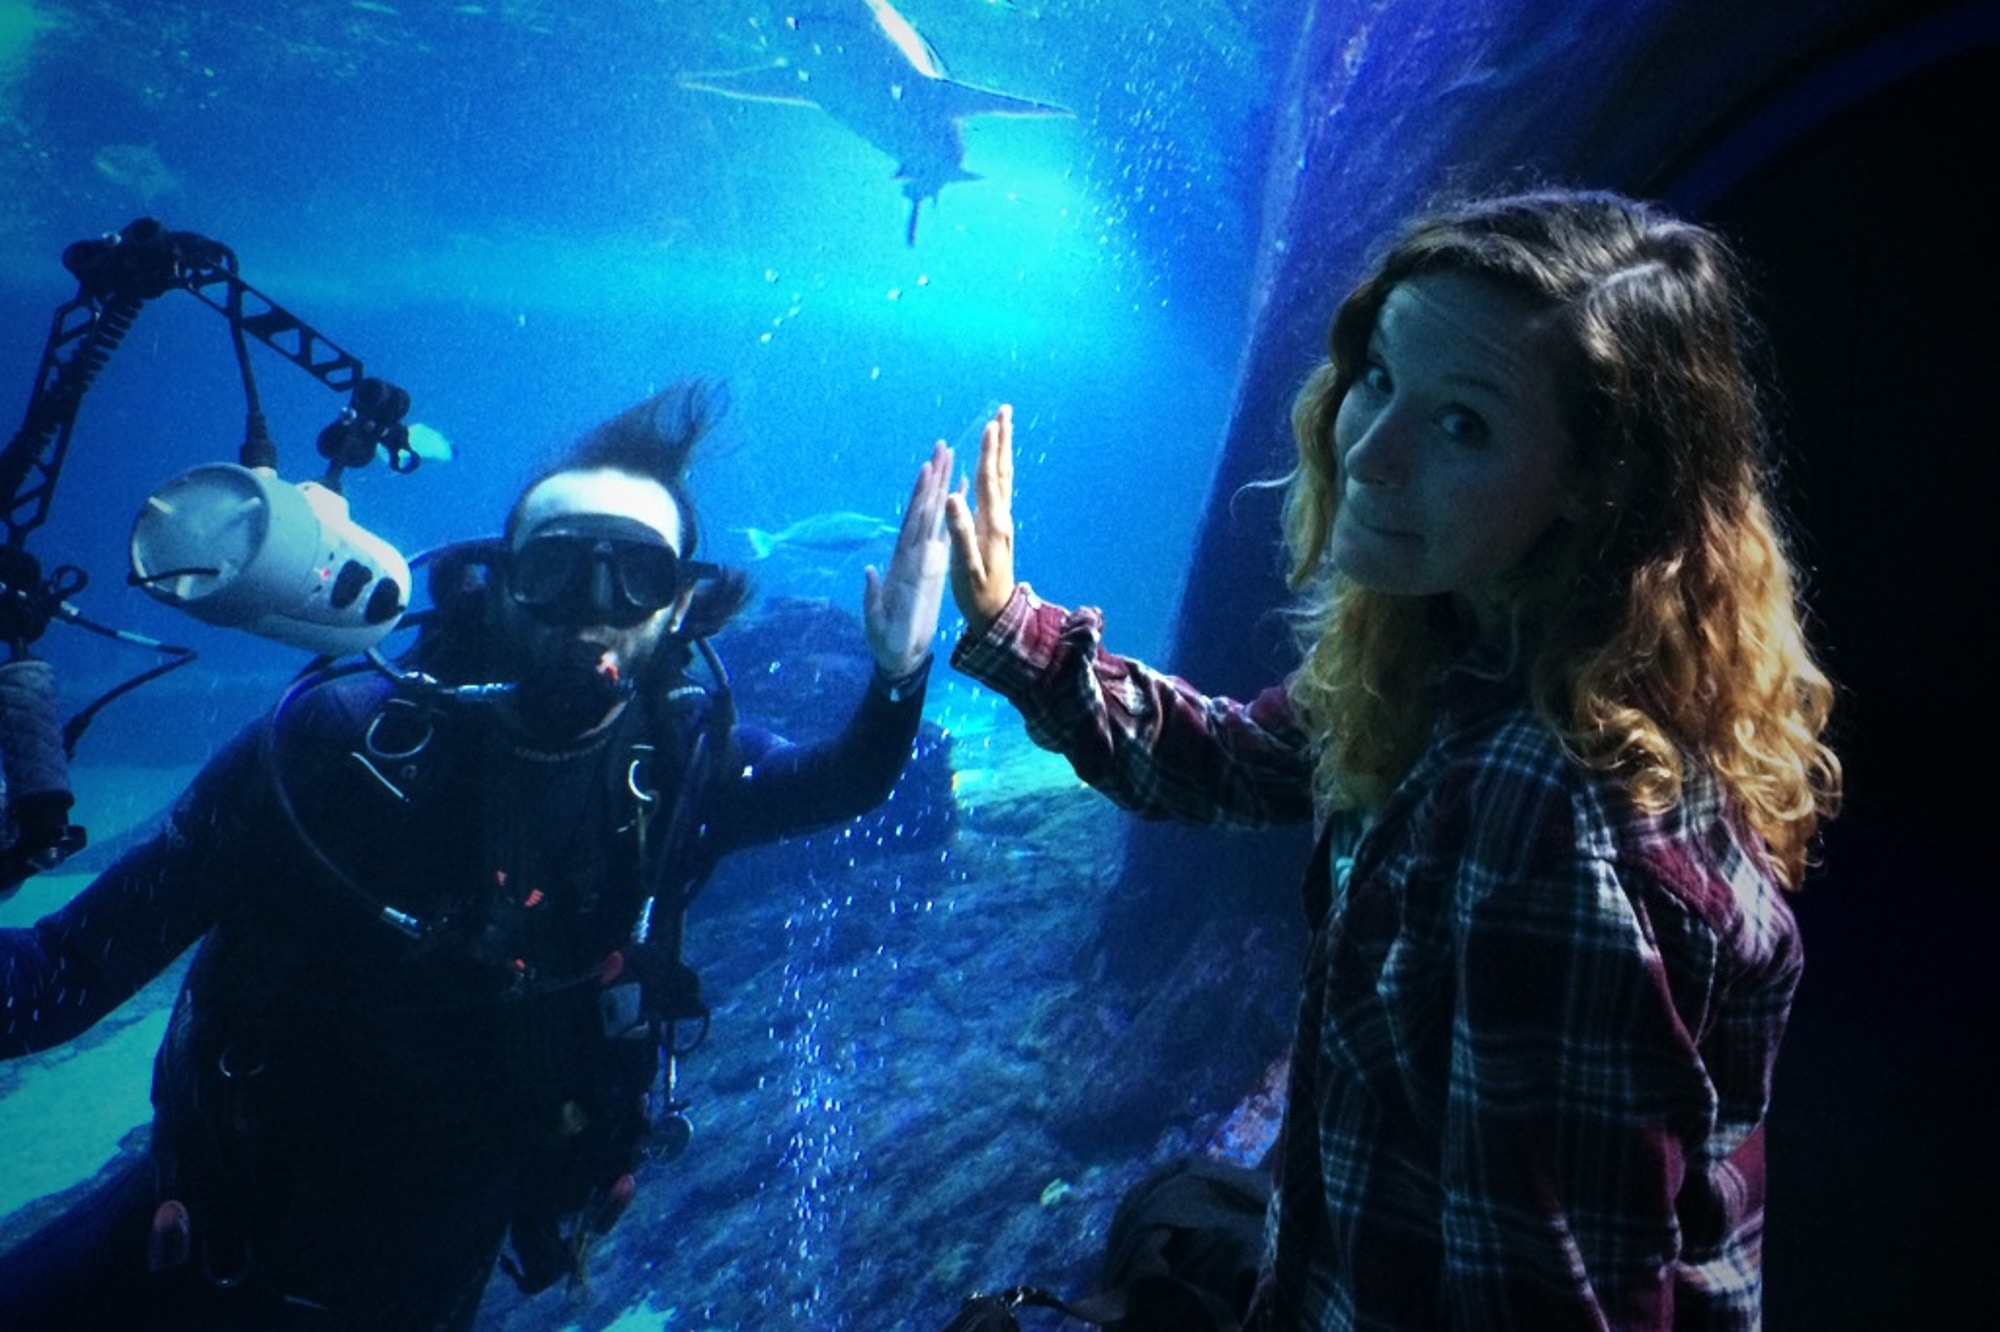 Kelsey presses her hand to the glass of an indoor aquarium while a man in a diver suit presses back from the other side